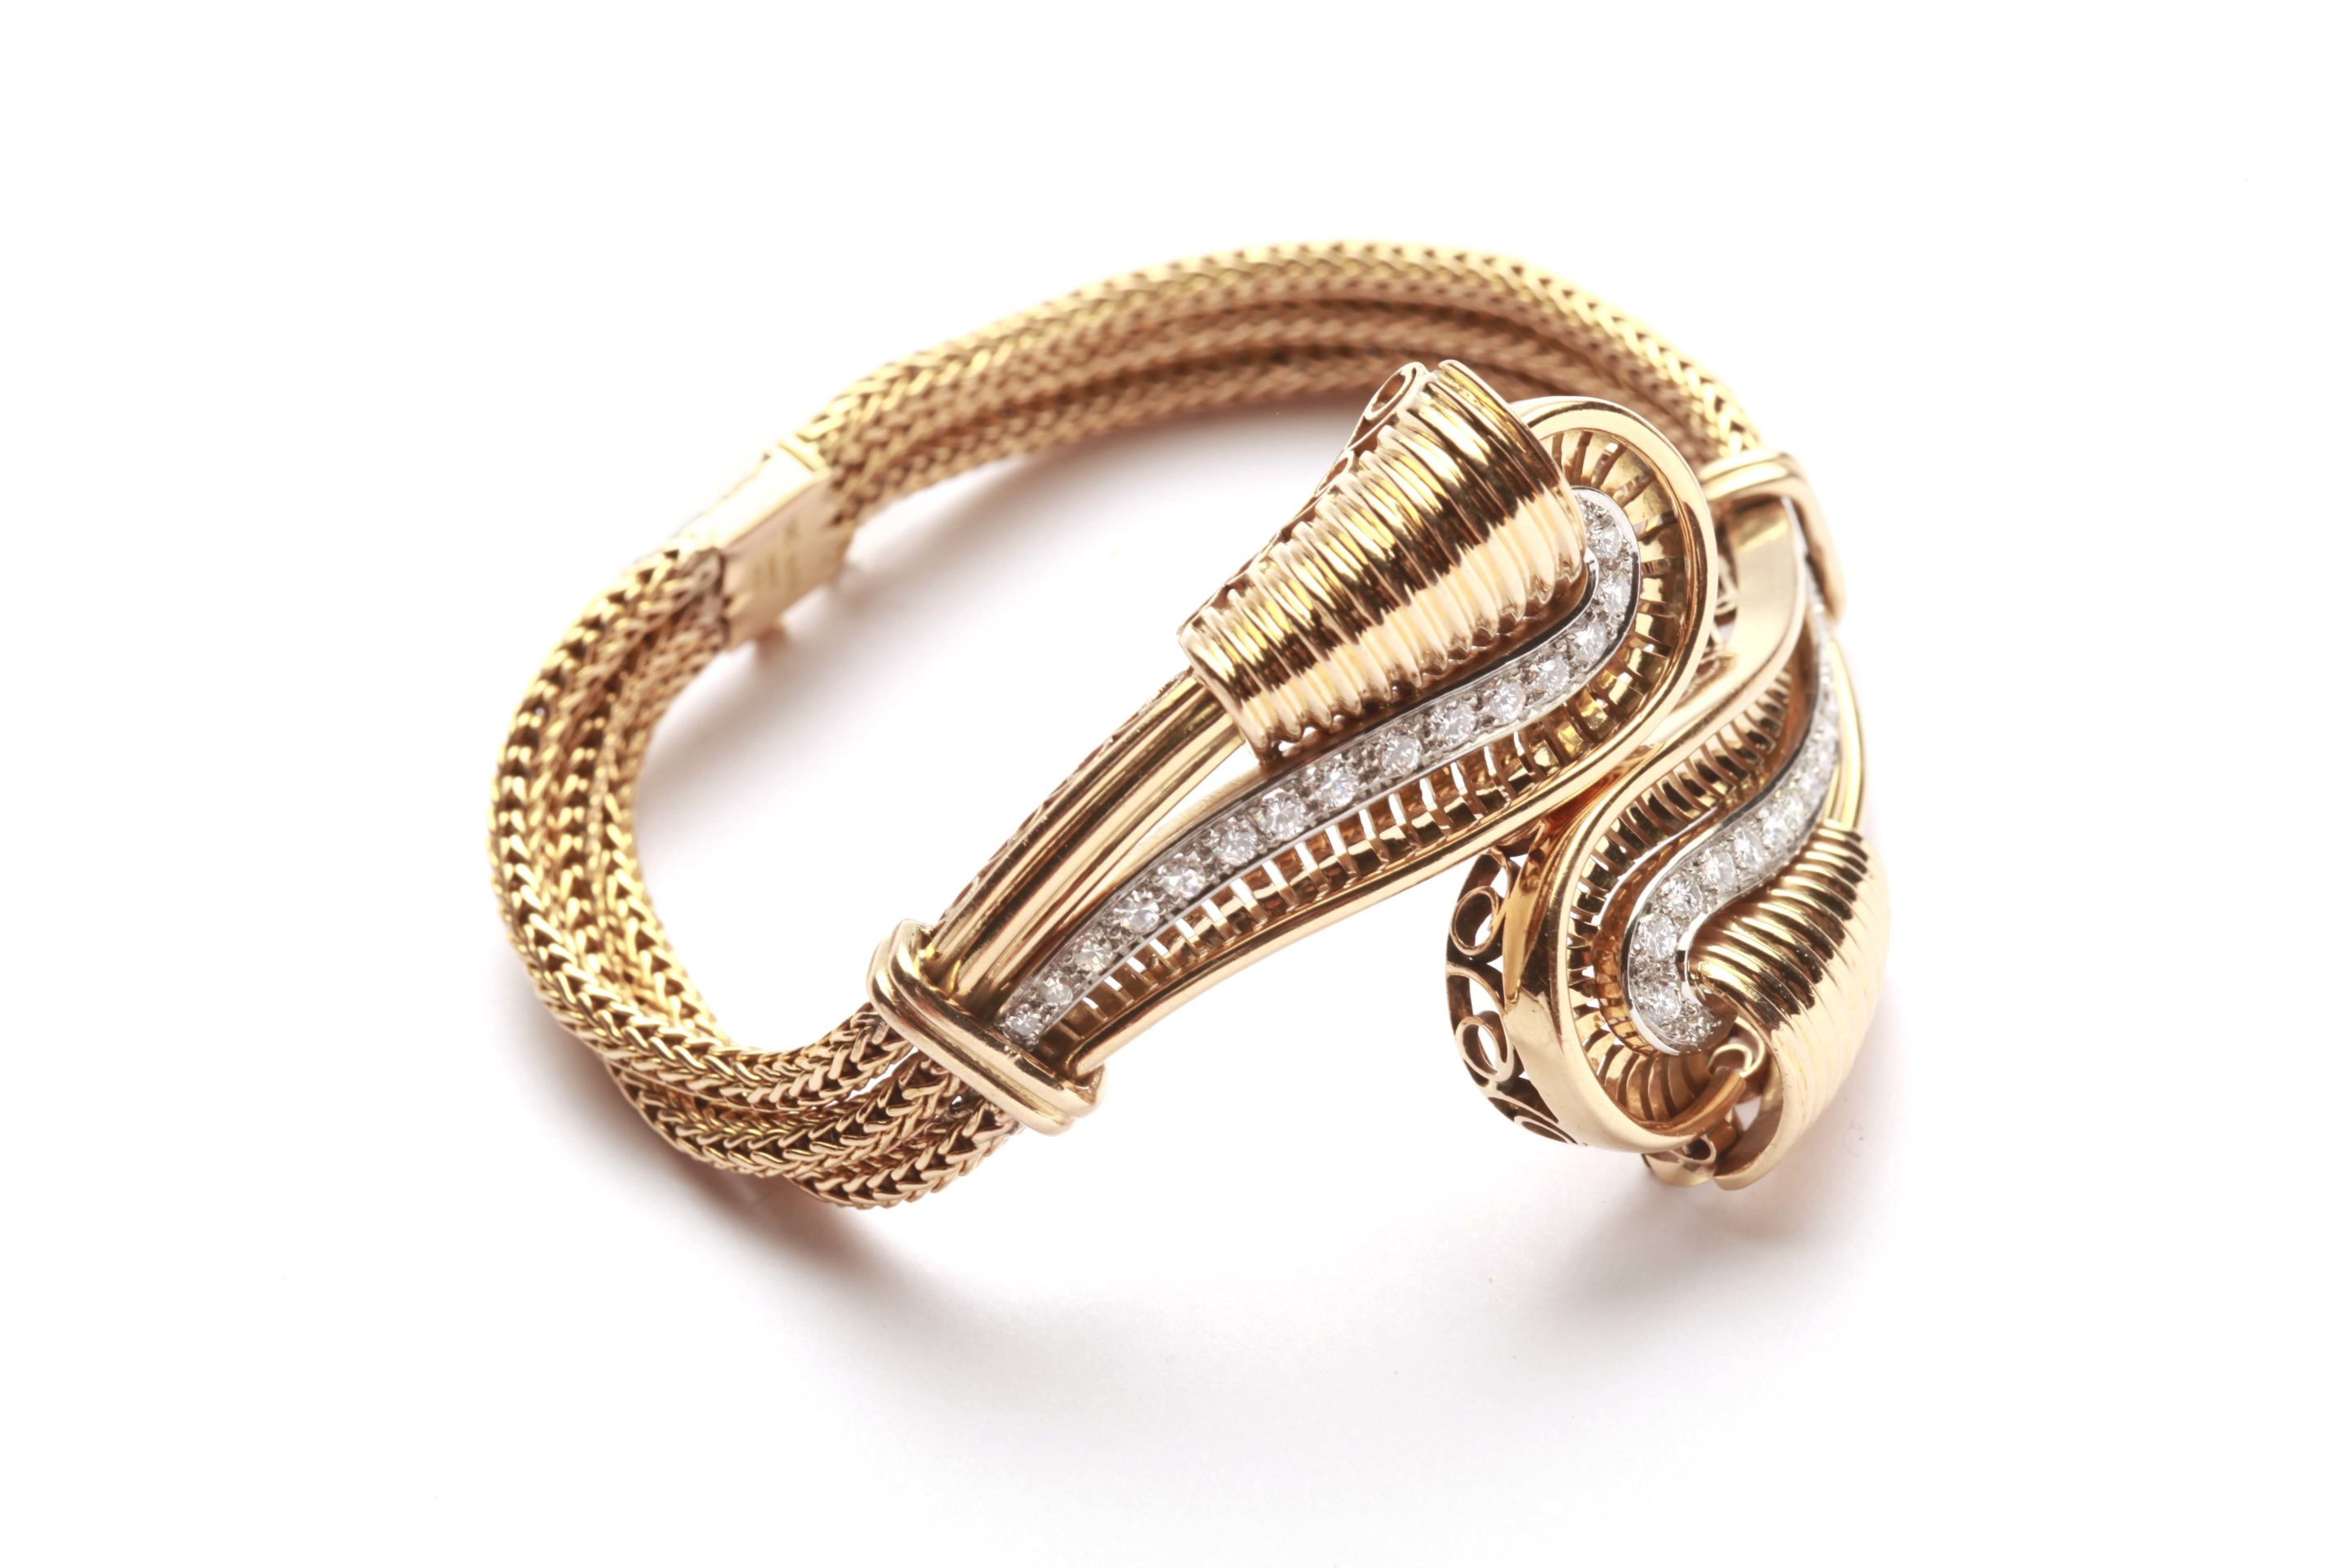 gold bracelet id on french tire j link track bracelets at org for retro ruby jewelry sale